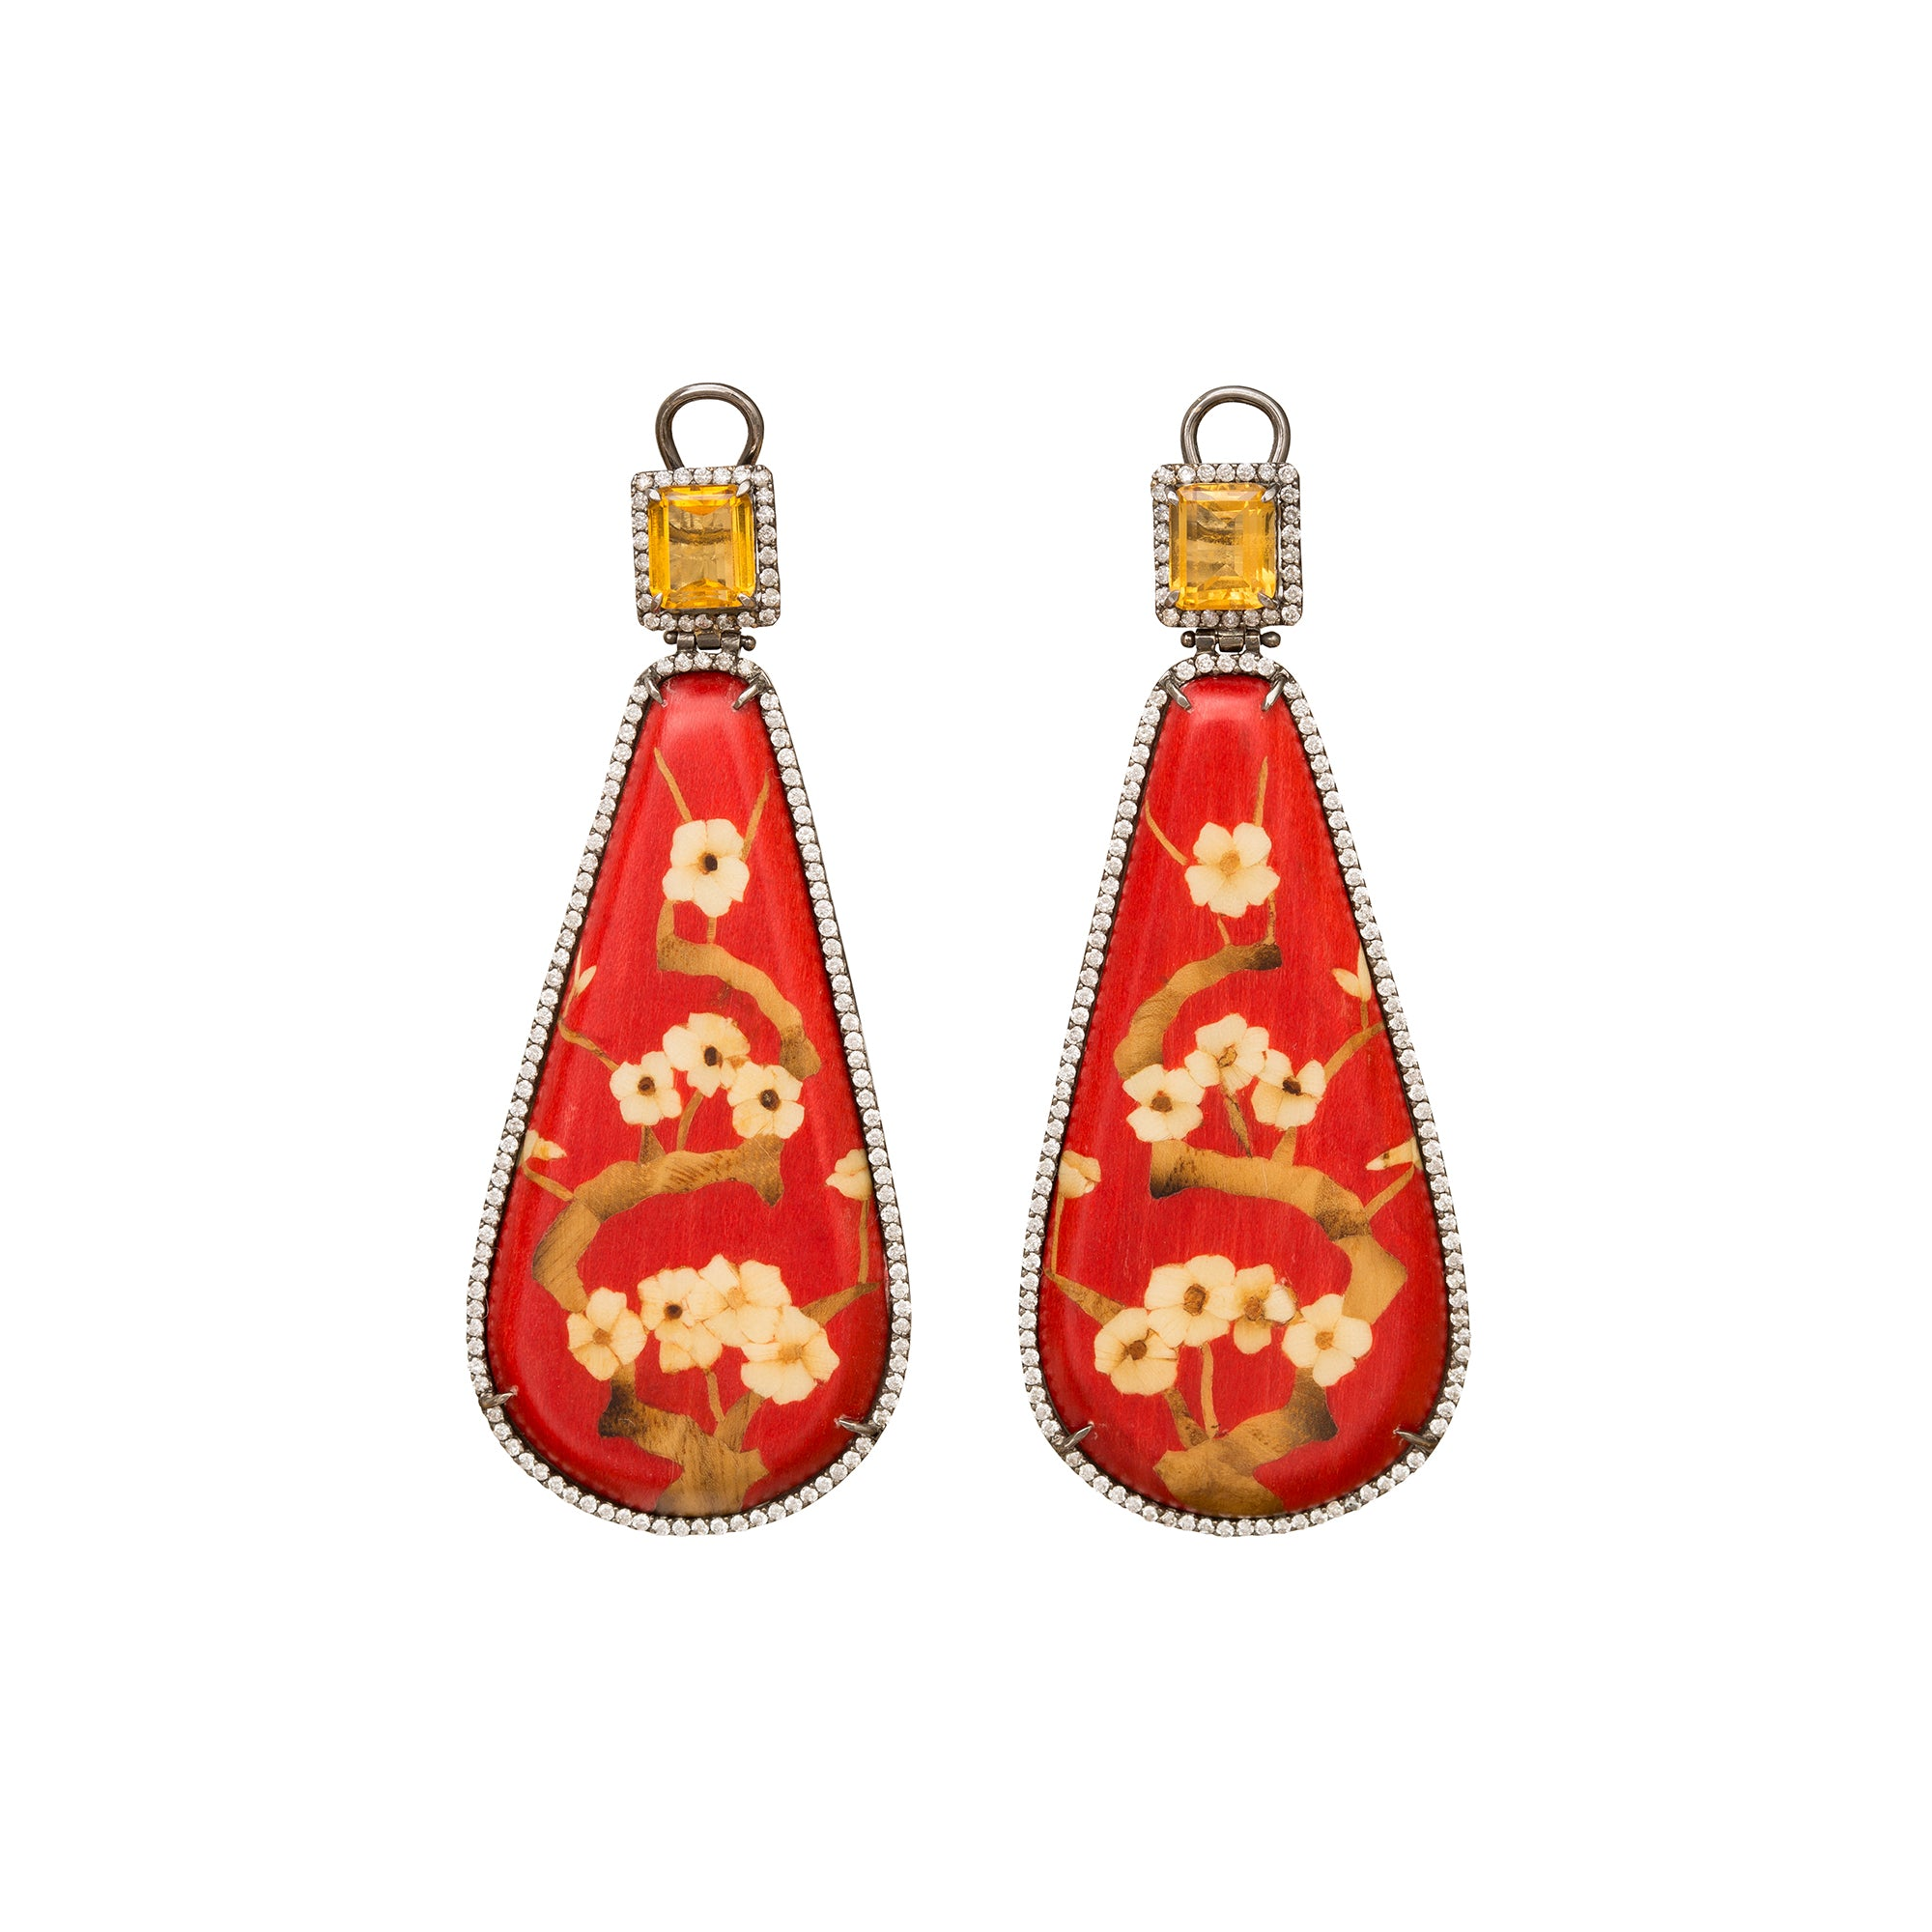 Marquetry Red Floral Earrings - Silvia Furmanovich - Earrings | Broken English Jewelry